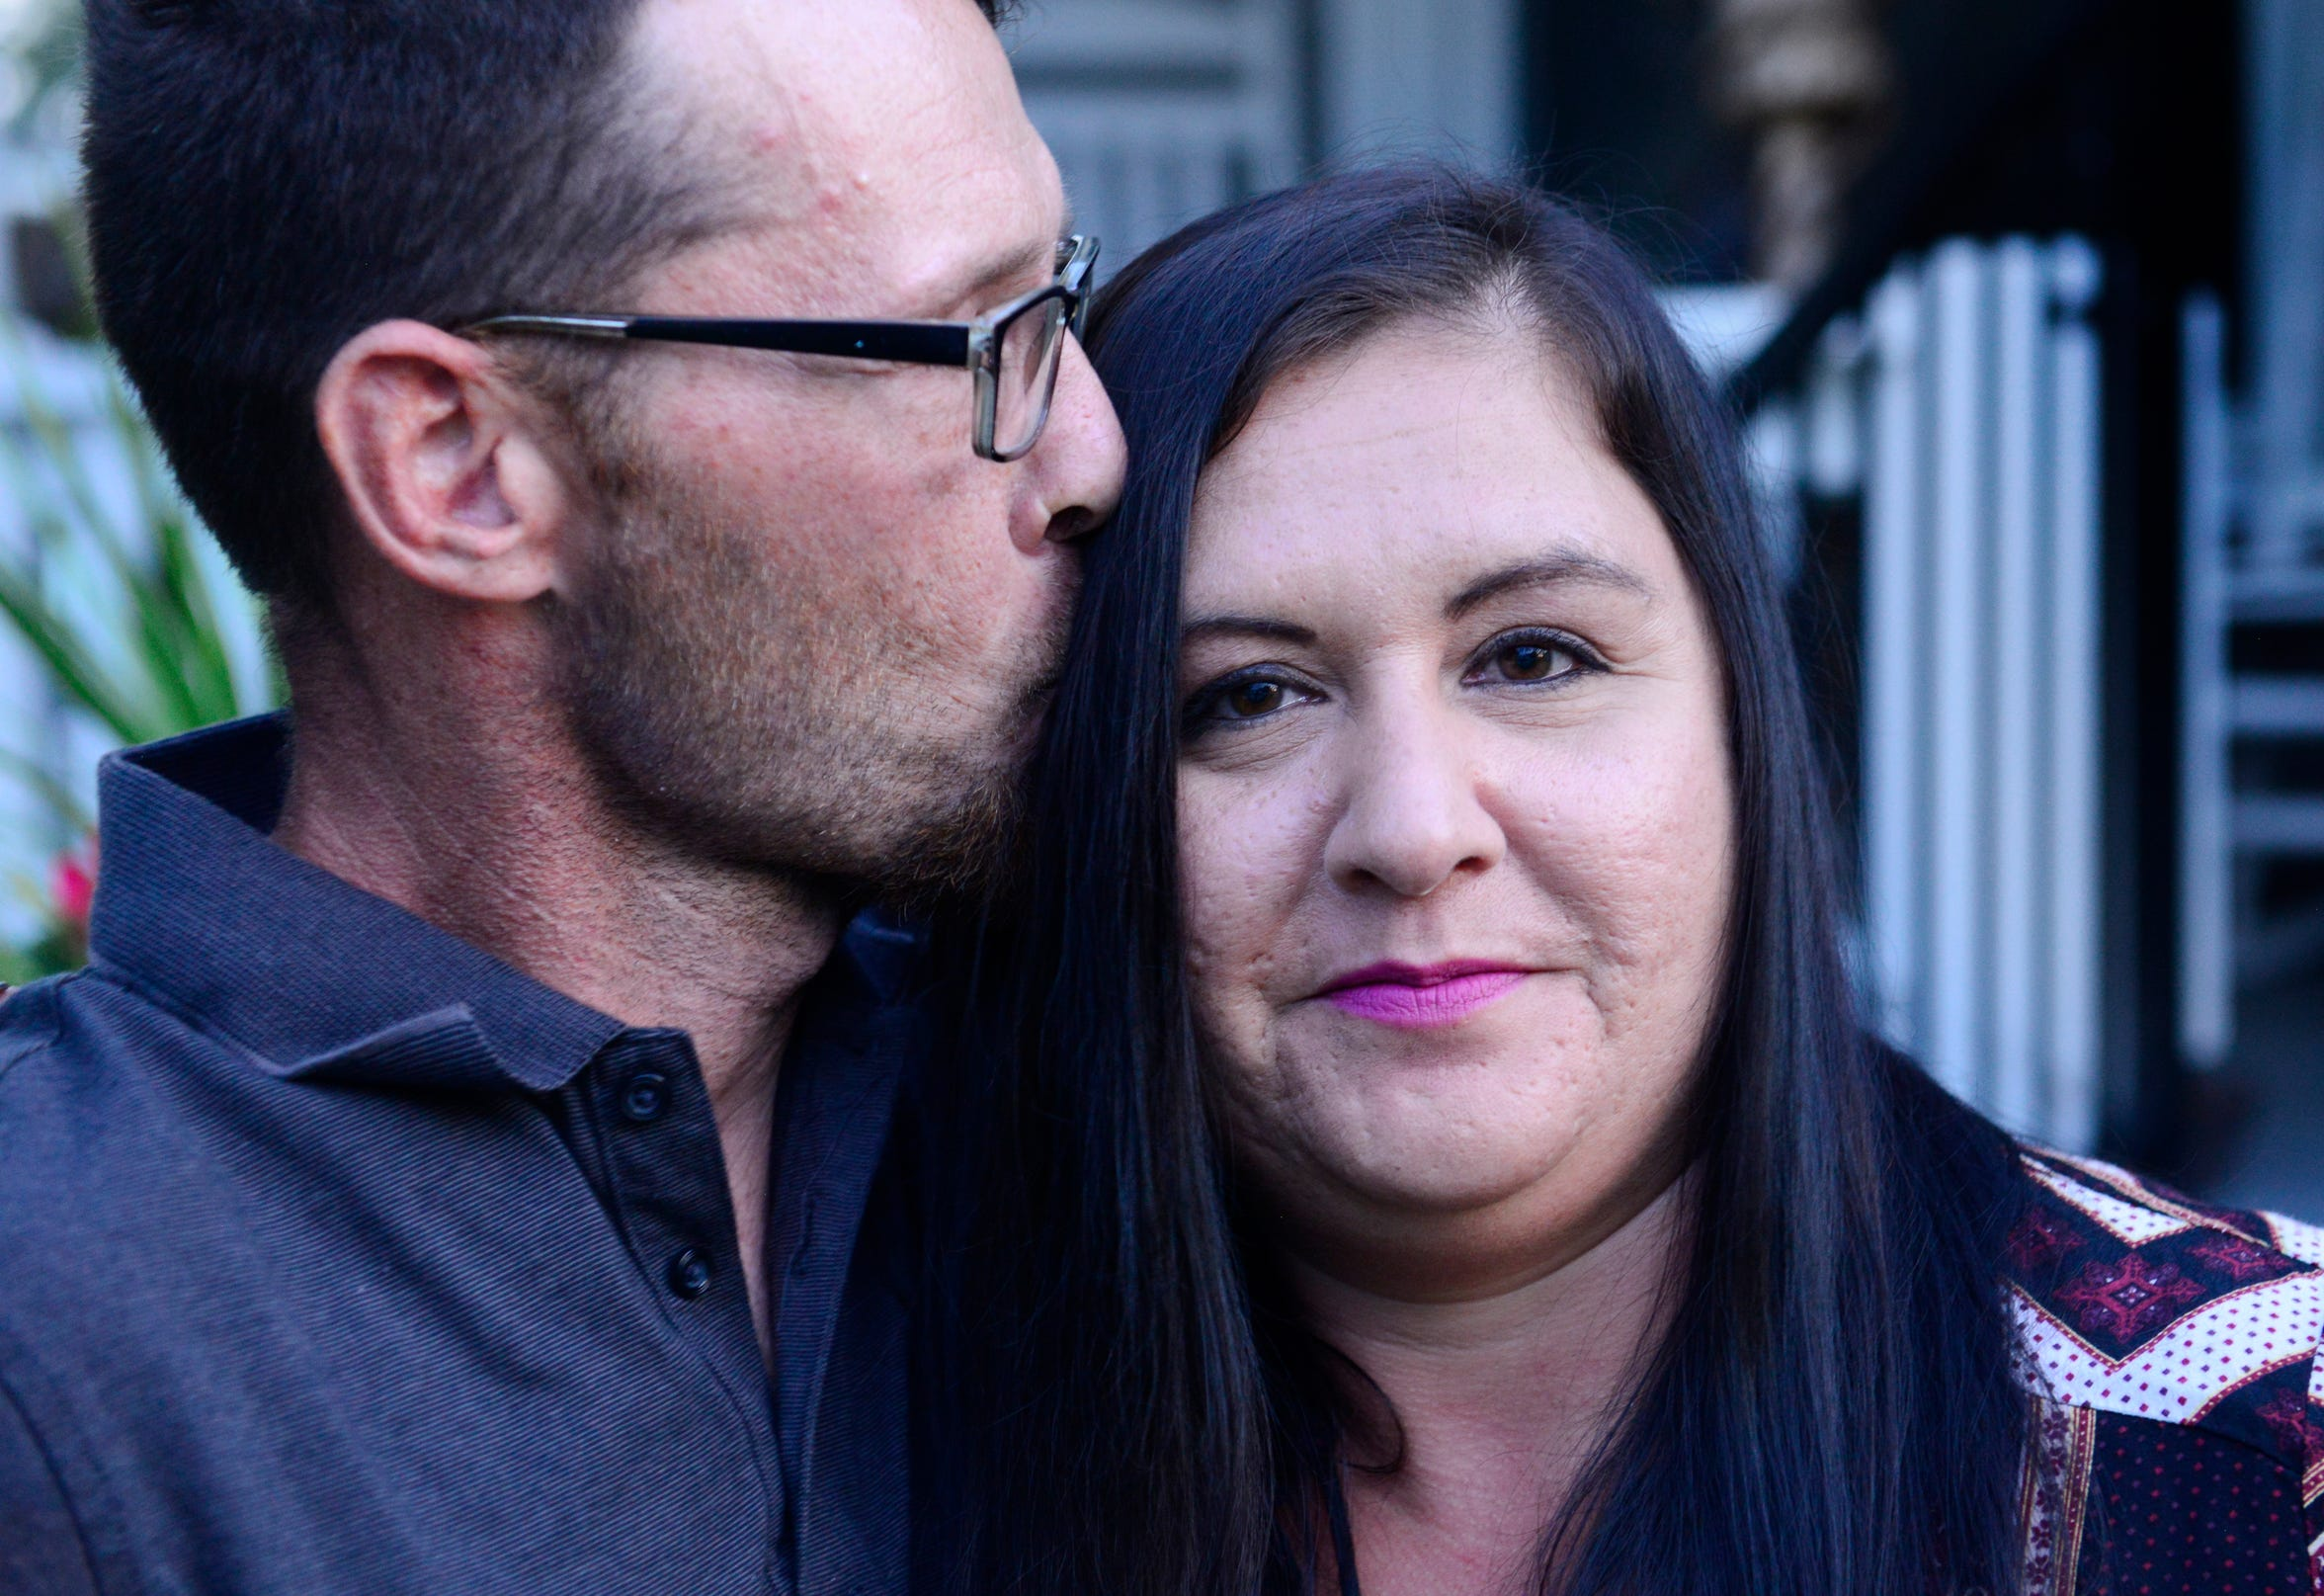 Together for 24 years, Jeff Schill, 40, and Angela Trimble, 39, of Port Clinton met in junior high and fell in love in high school. The couple have stopped using drugs, including cocaine and heroin, largely motivated by the threat of having their son taken away.